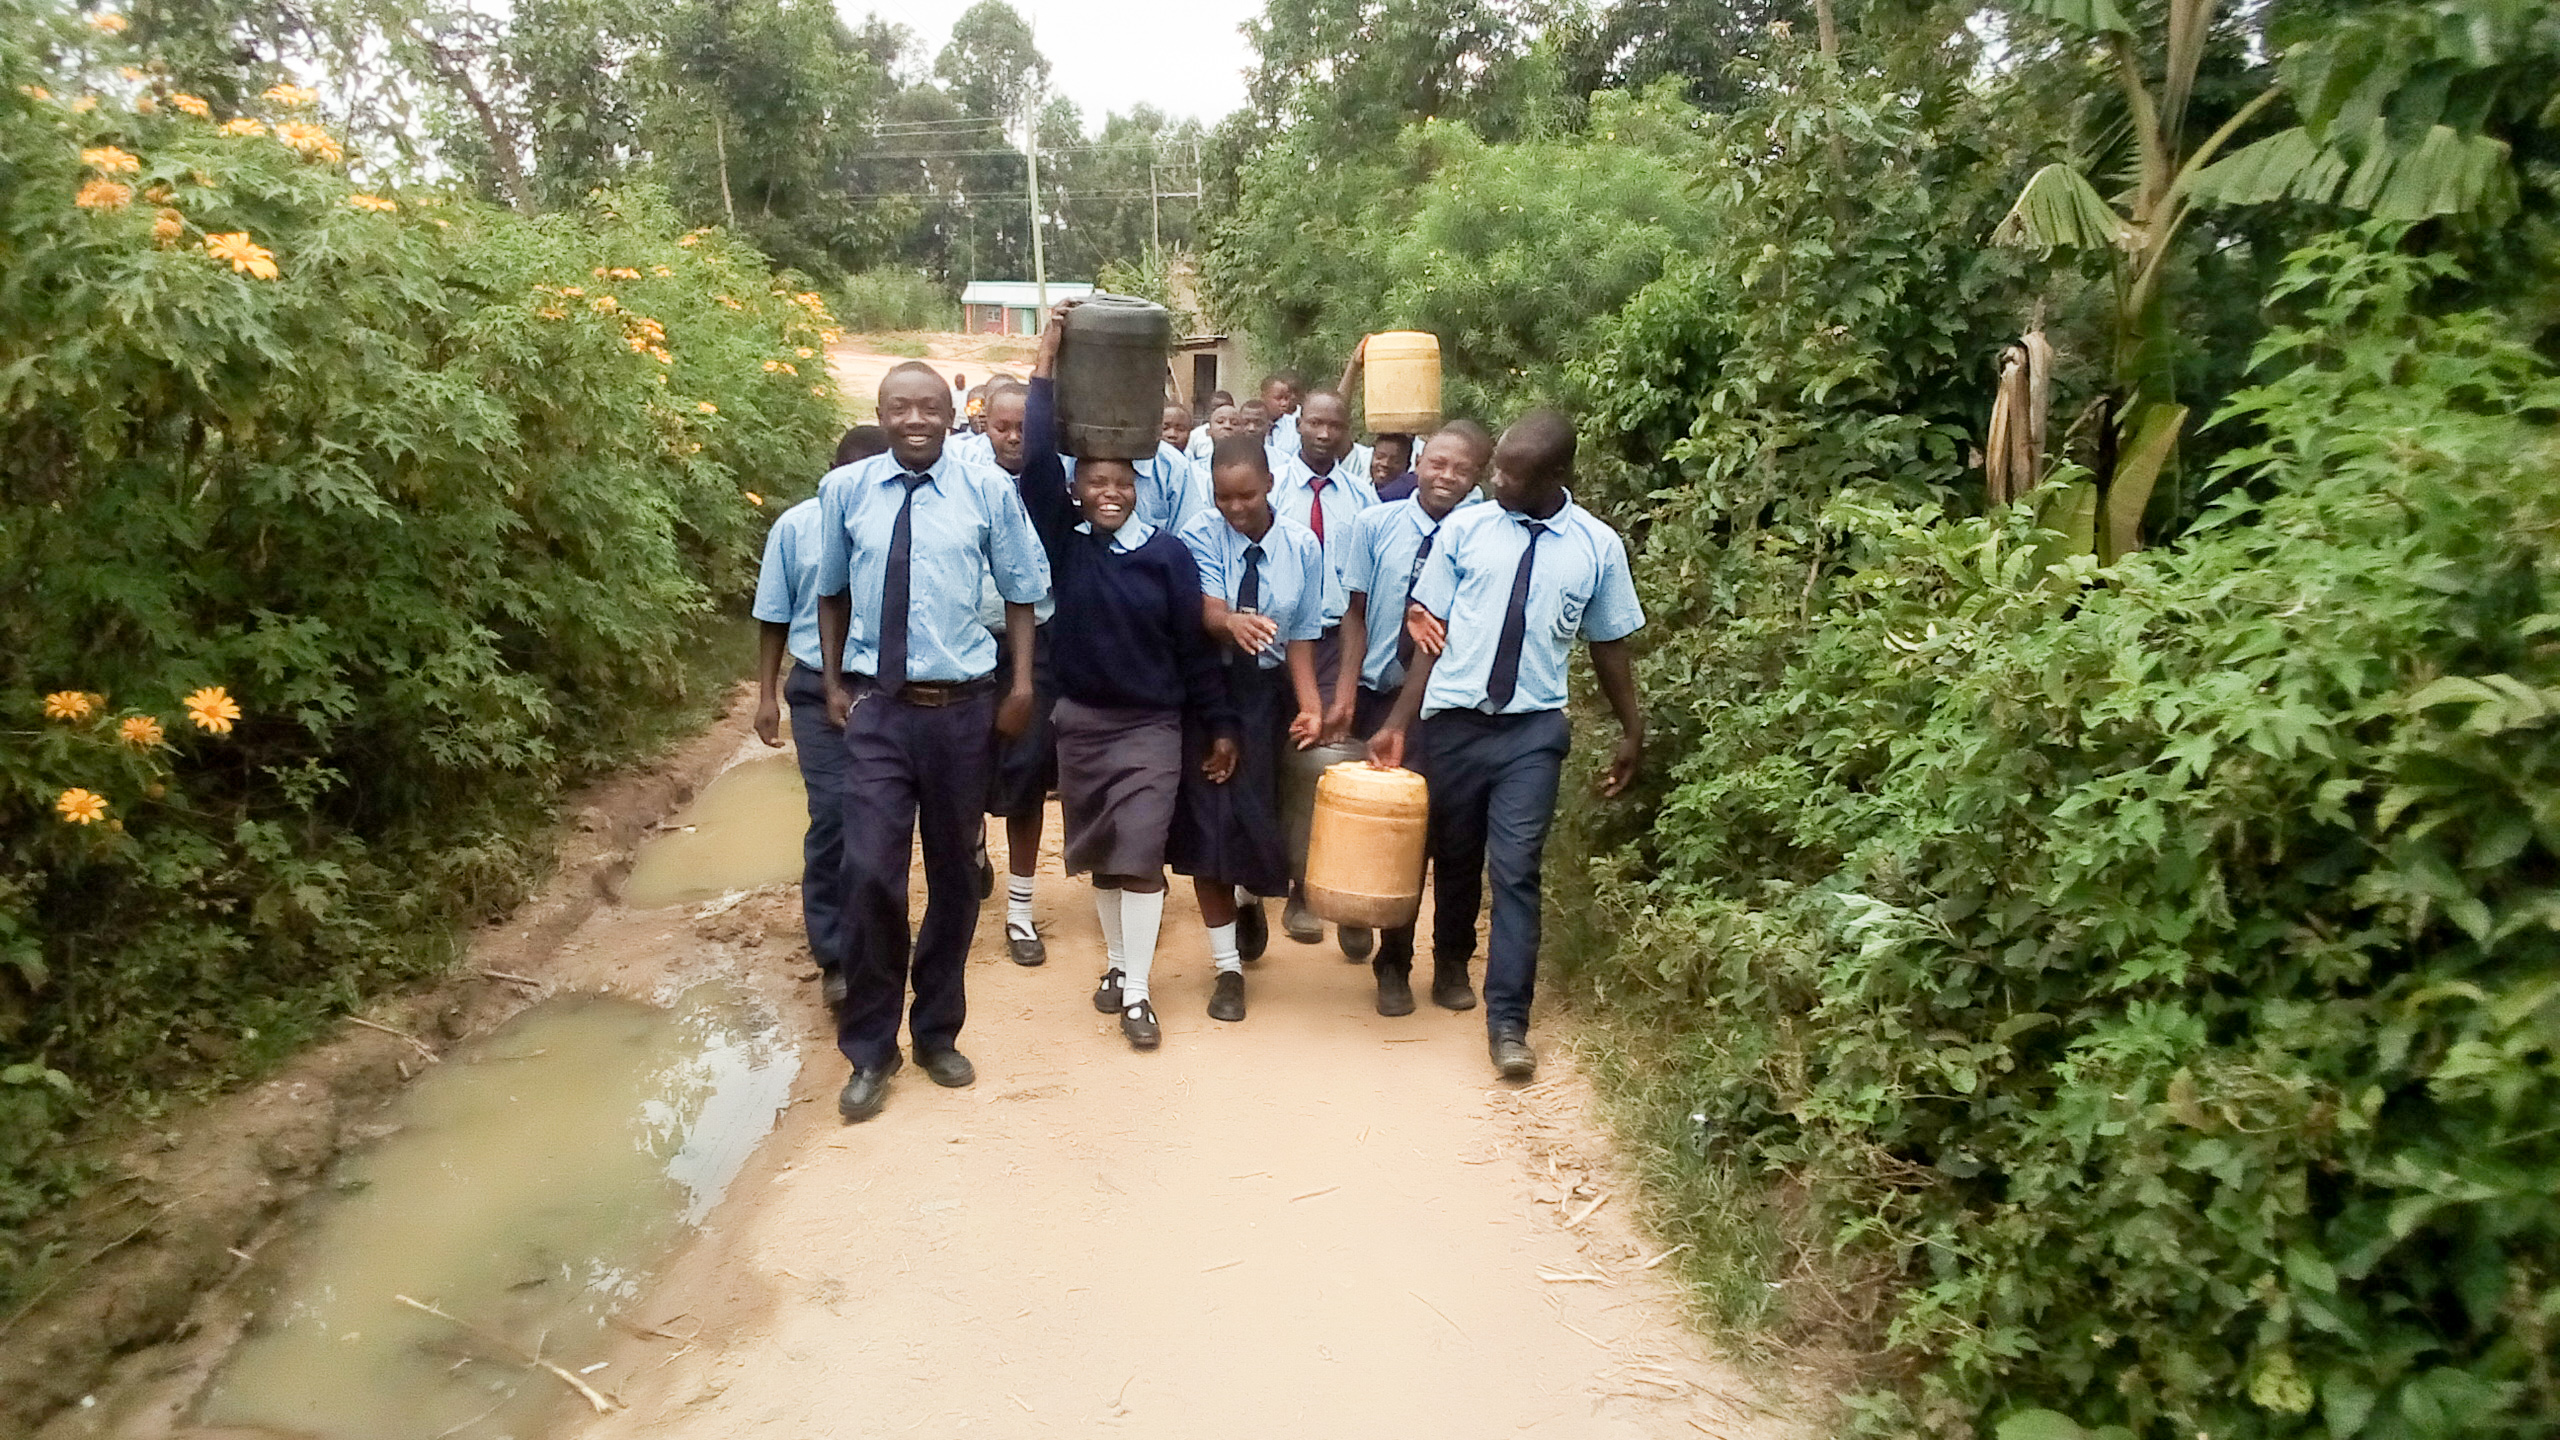 The Water Project : 10-kenya19012-walking-back-to-school